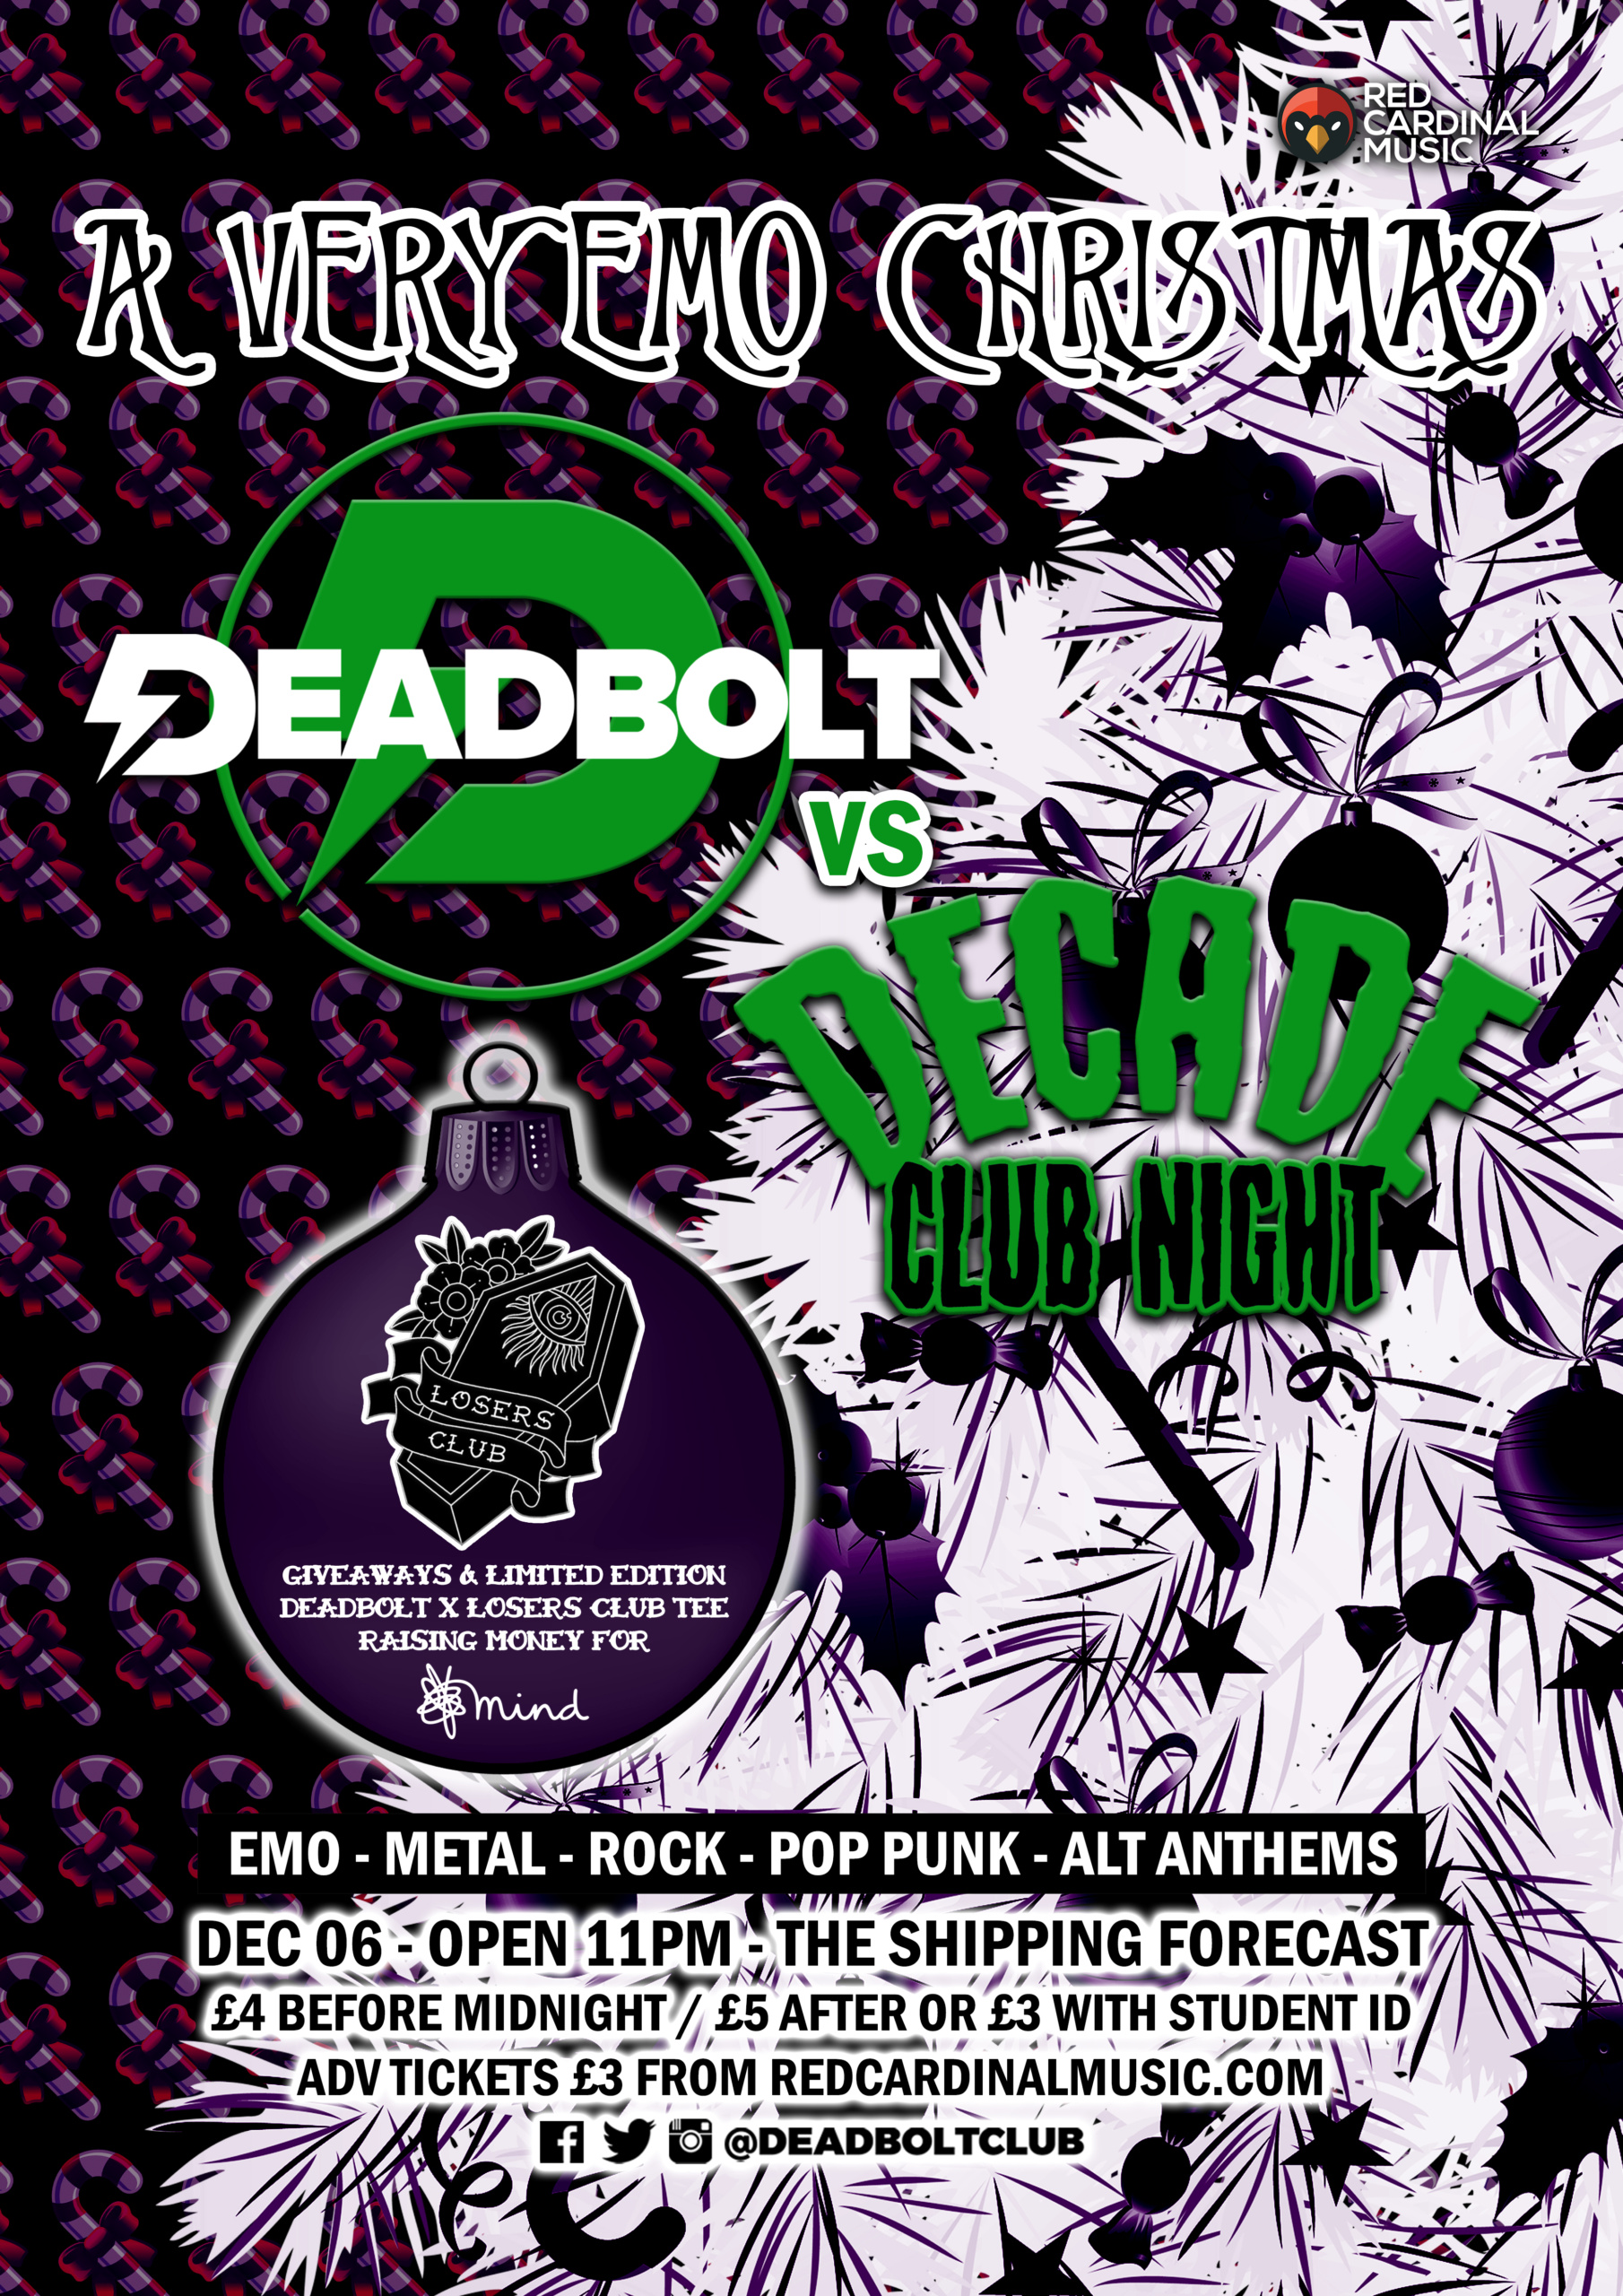 Deadbolt Liverpool x Decade - Emo Christmas 2019 - The Shipping Forecast - Poster